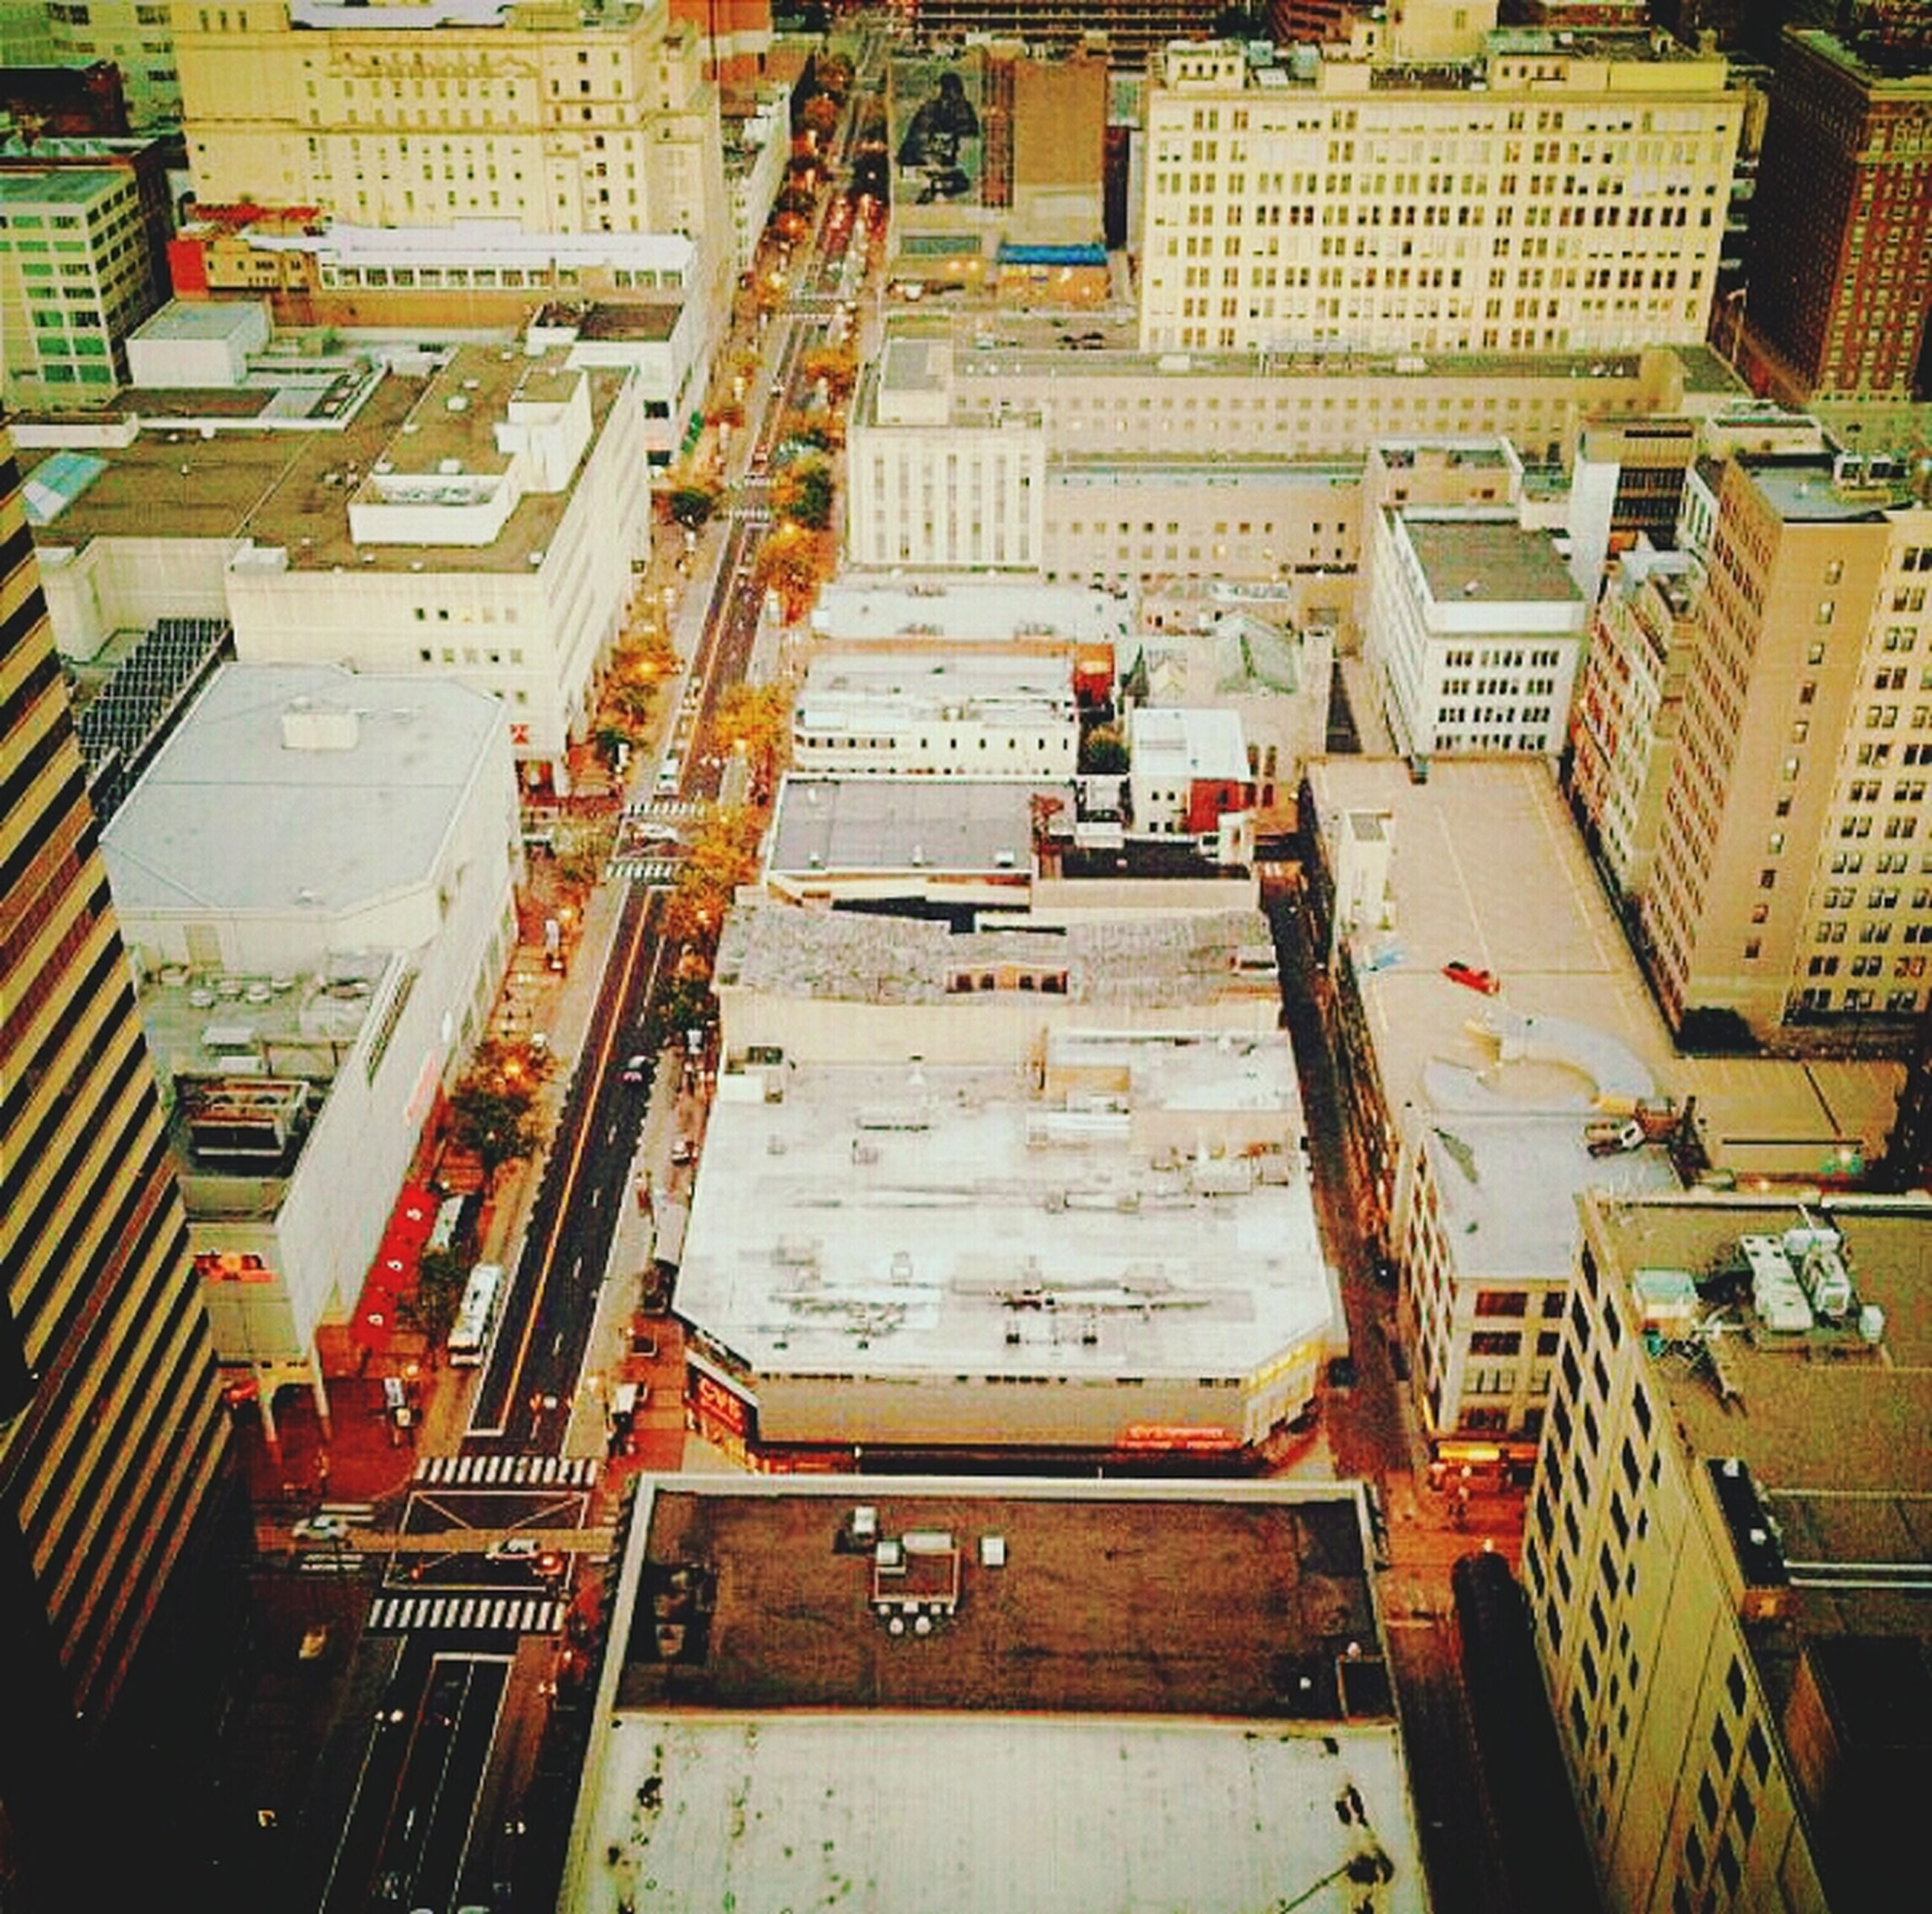 architecture, building exterior, built structure, city, high angle view, residential building, residential structure, building, city life, street, residential district, transportation, roof, incidental people, day, car, cityscape, outdoors, city street, house